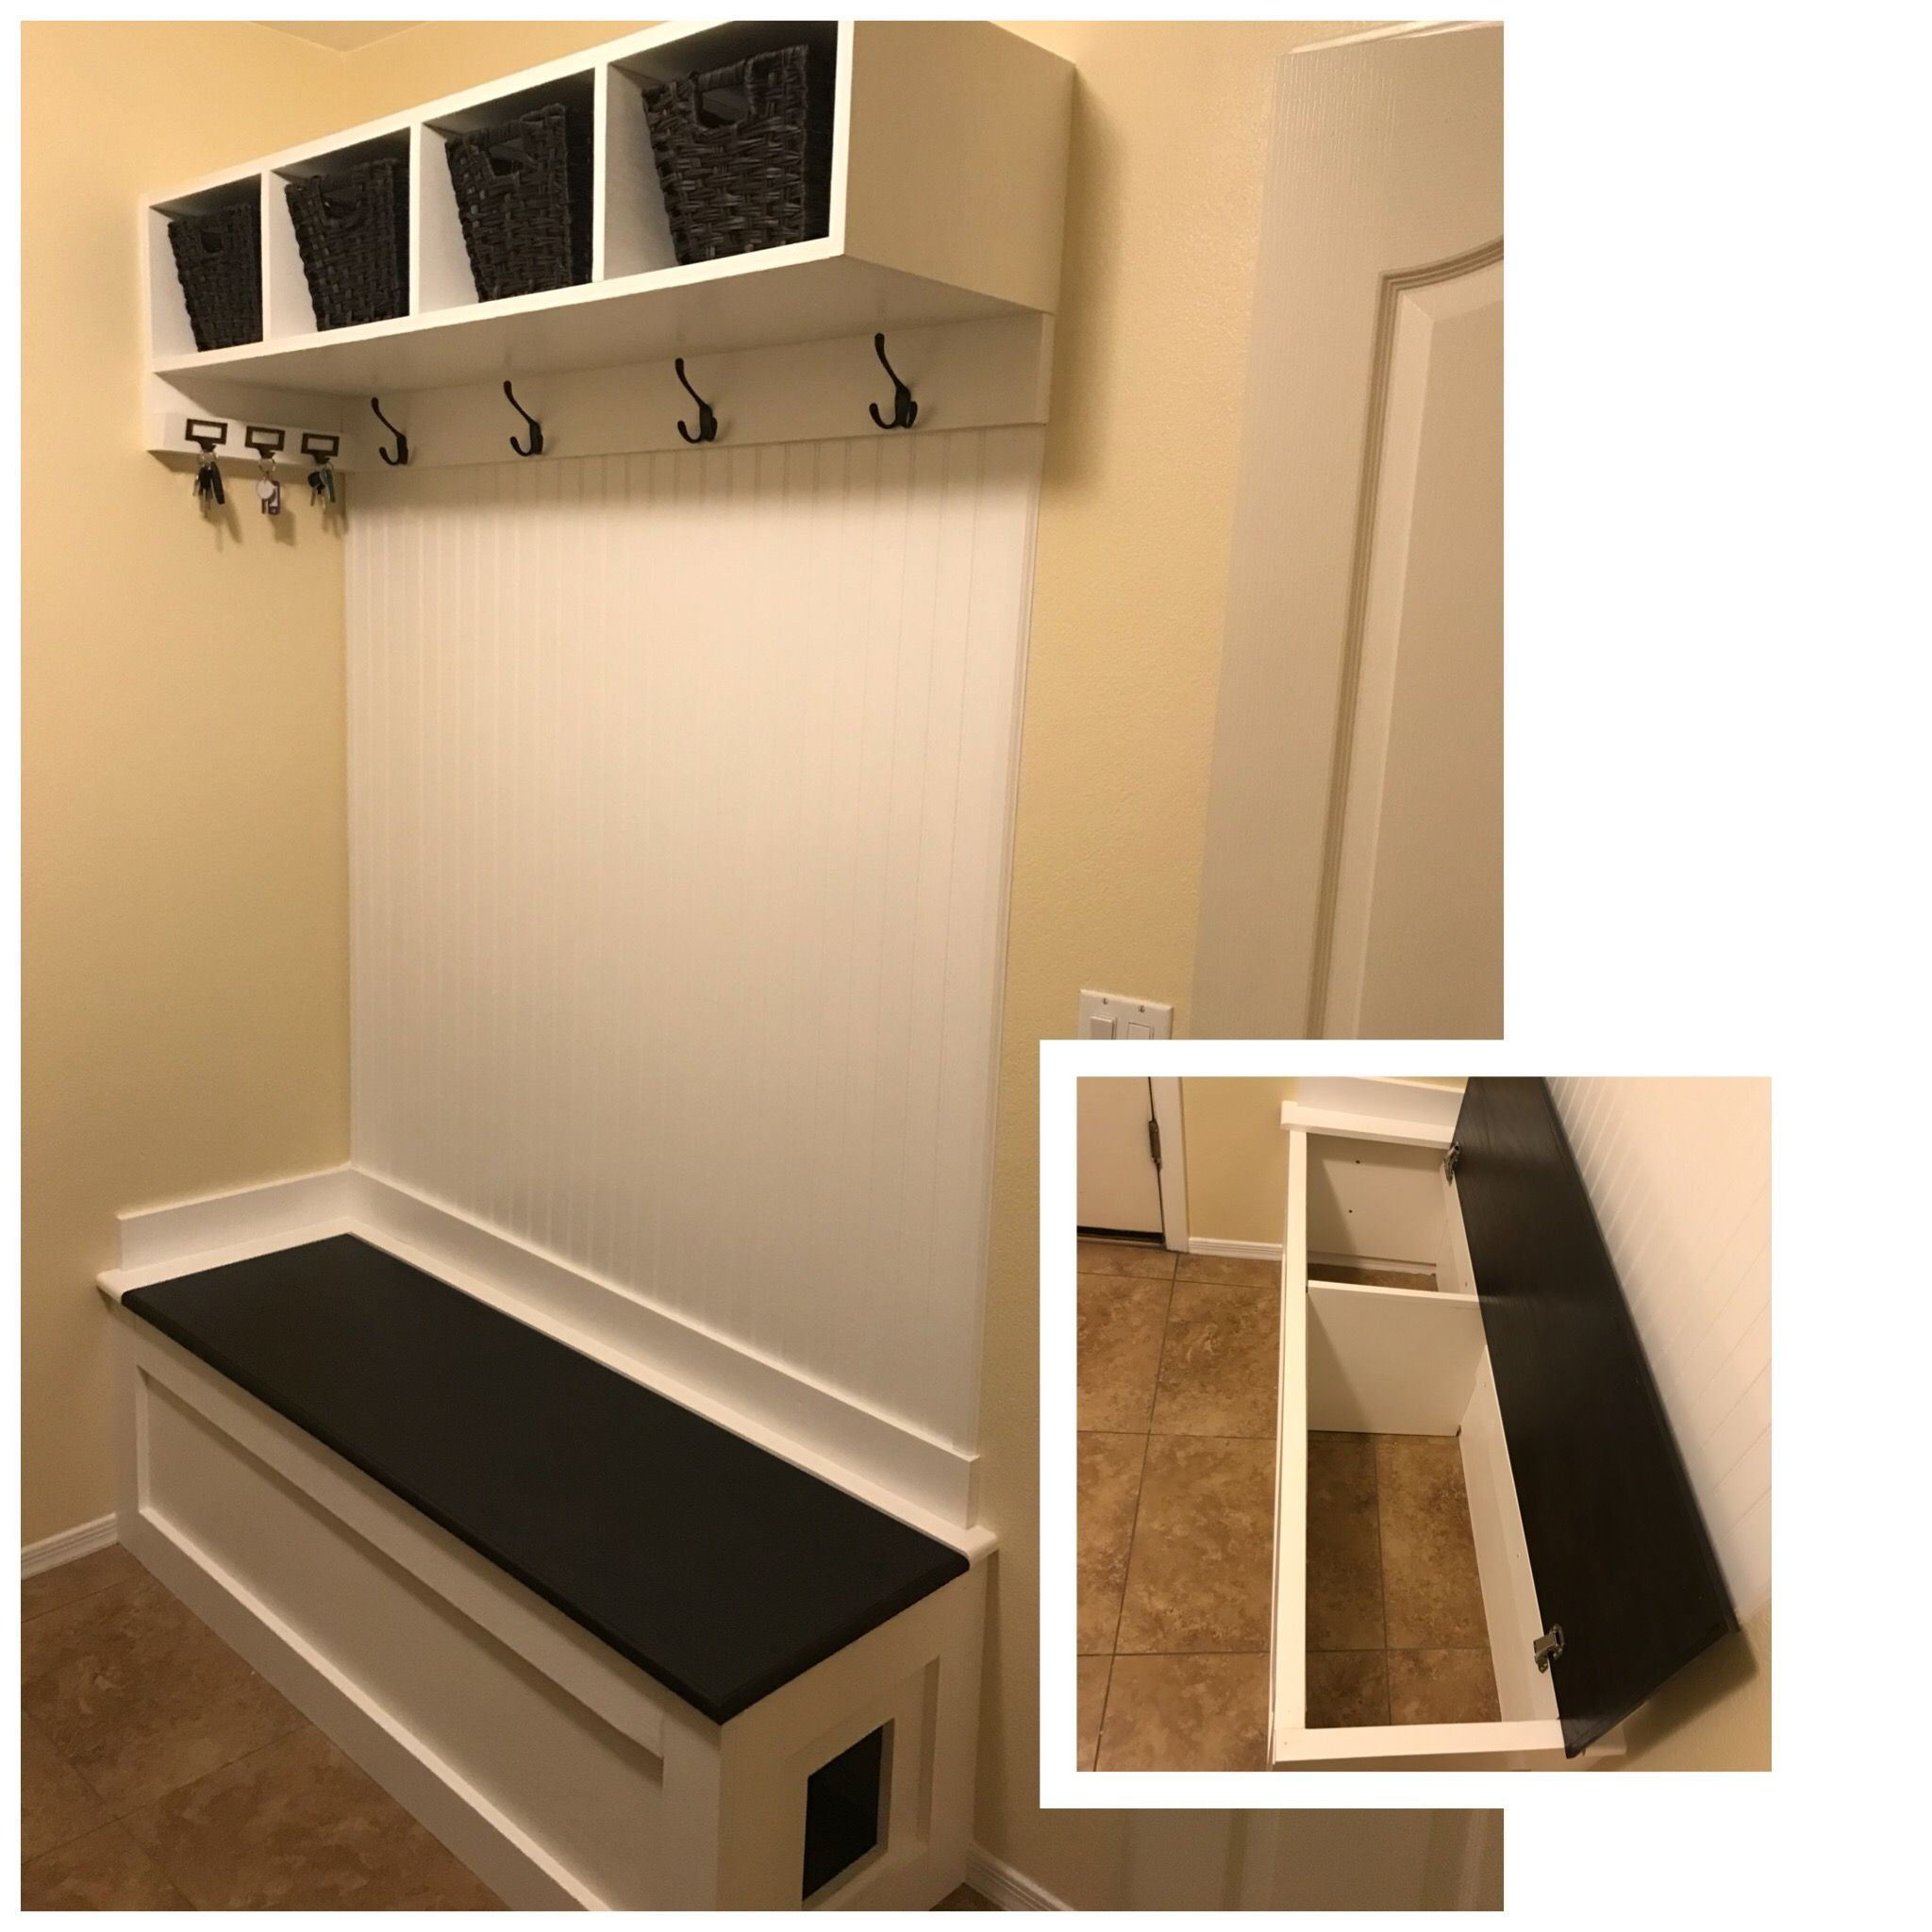 Image Result For Mudroom Bench With Litter Box Mudroom Bench Litter Box Hidden Litter Boxes